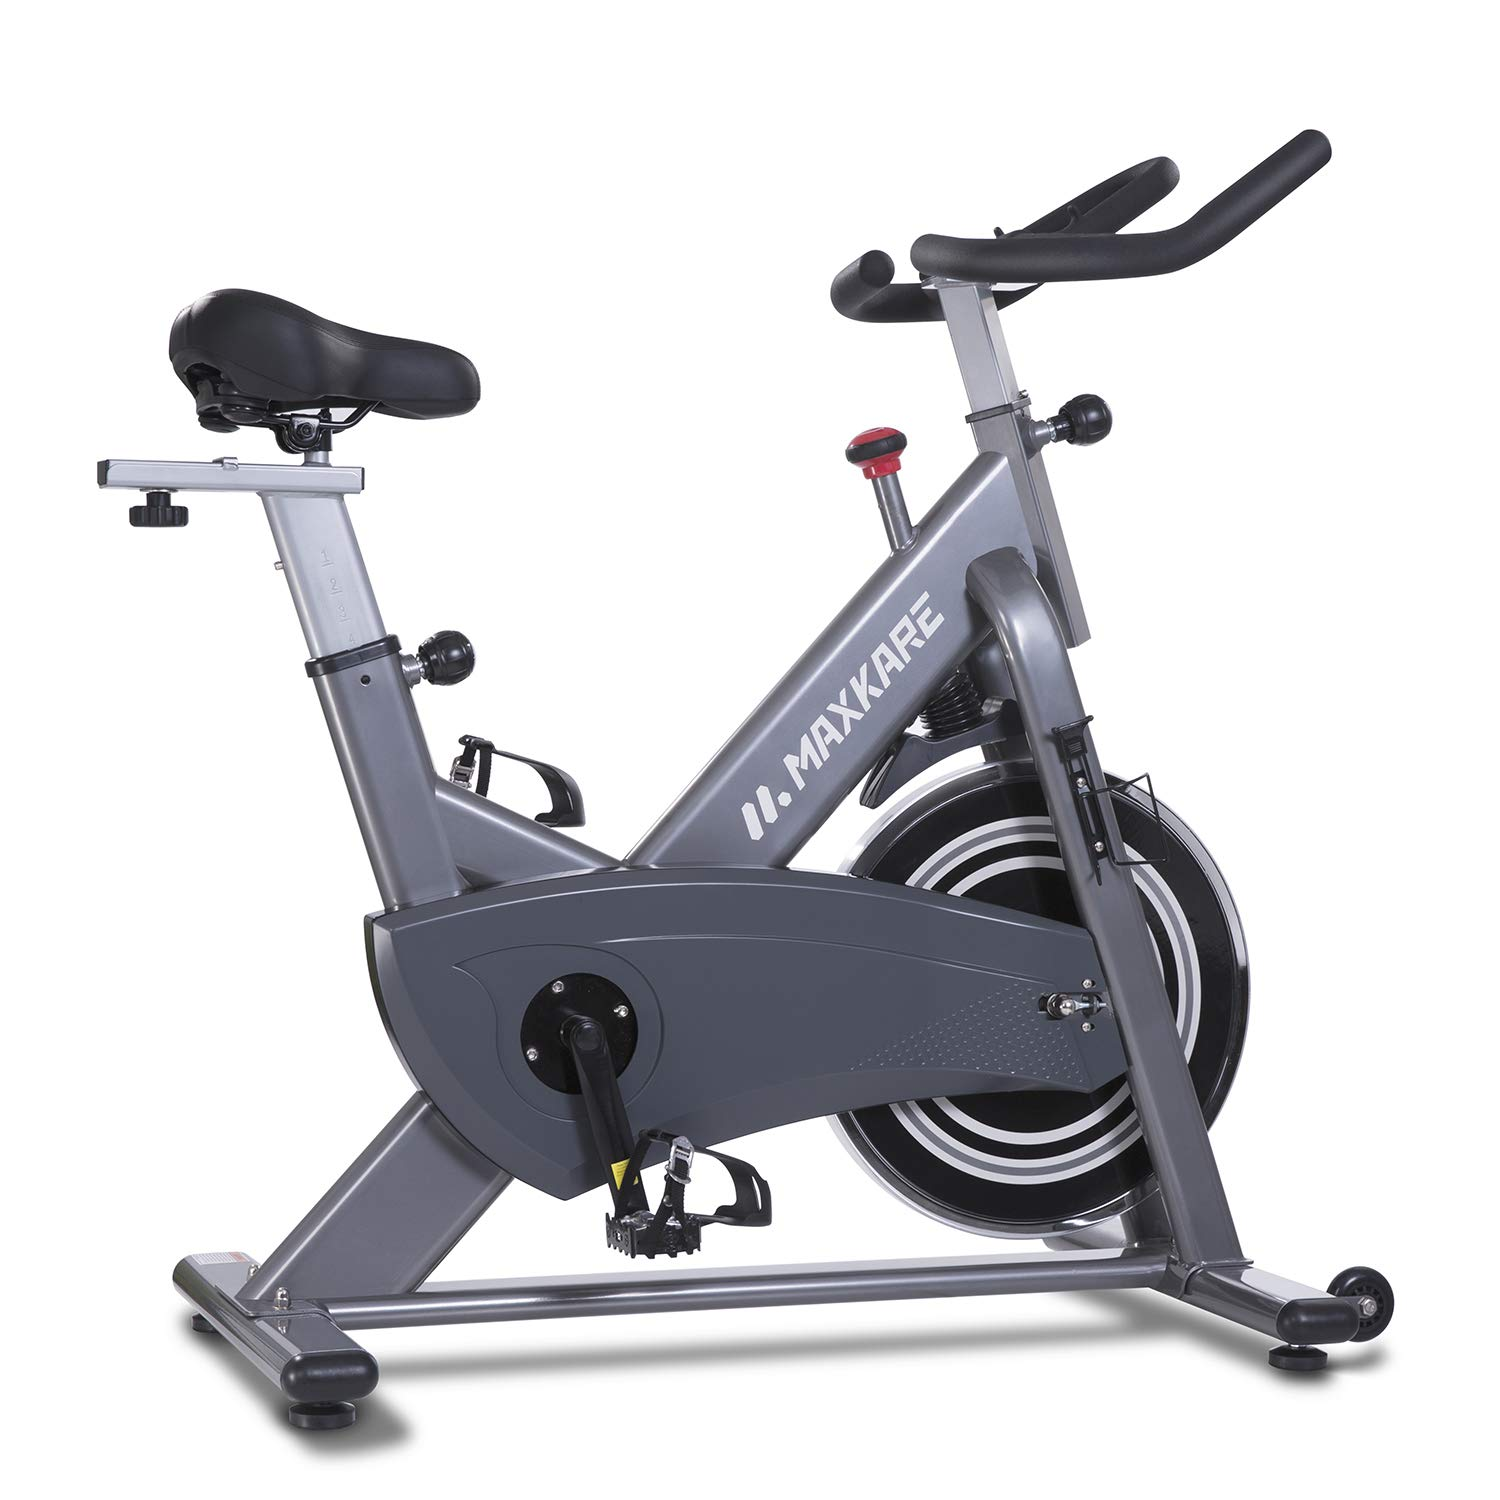 MaxKare Magnetic Exercise Bikes Stationary Belt Drive Indoor Cycling Bike Gym Level with High Weight Capacity Adjustable Magnetic Resistance w/Tablet Holder (Gray (No Pulse Sensors))